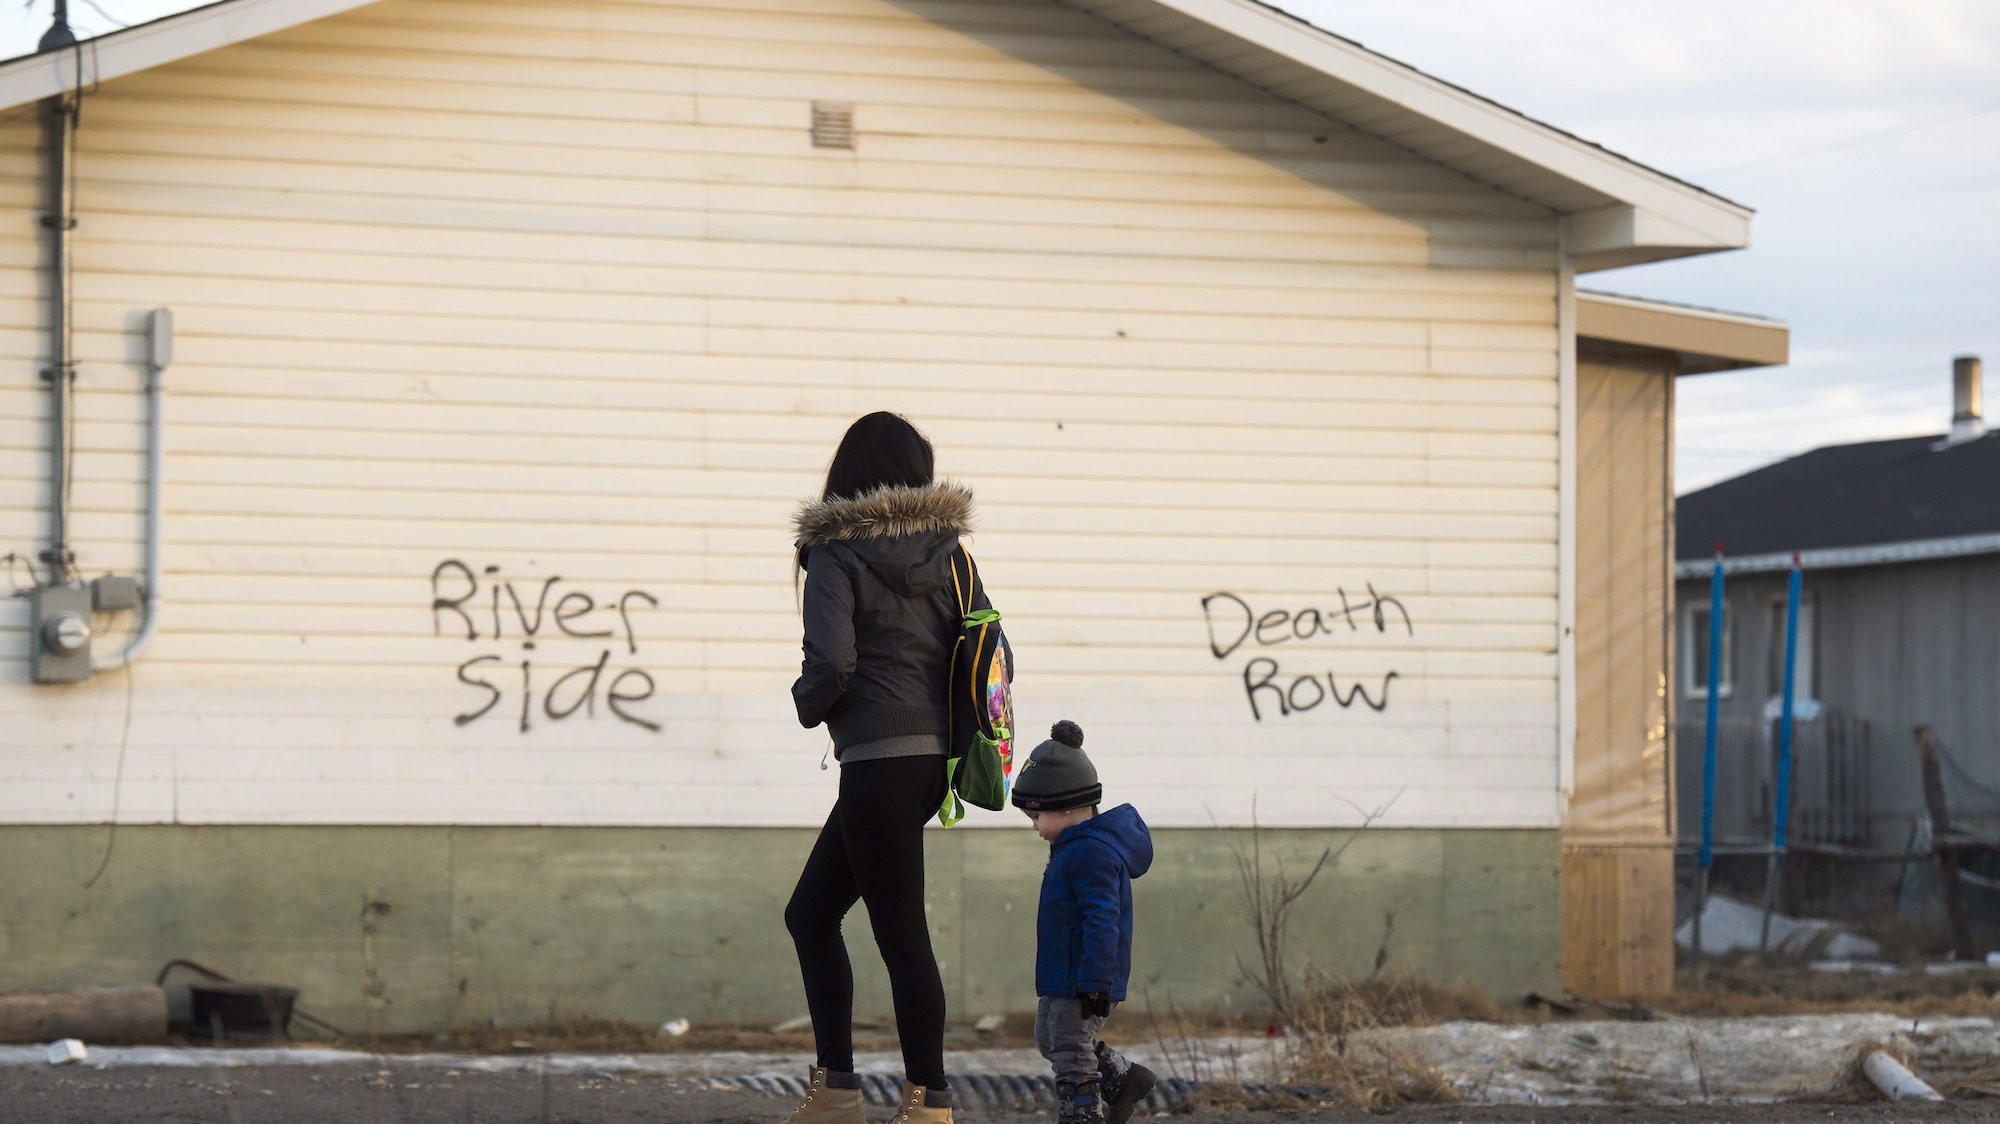 New Study Lays Bare 'Crushing Levels of Poverty' Indigenous Children in Canada Live In